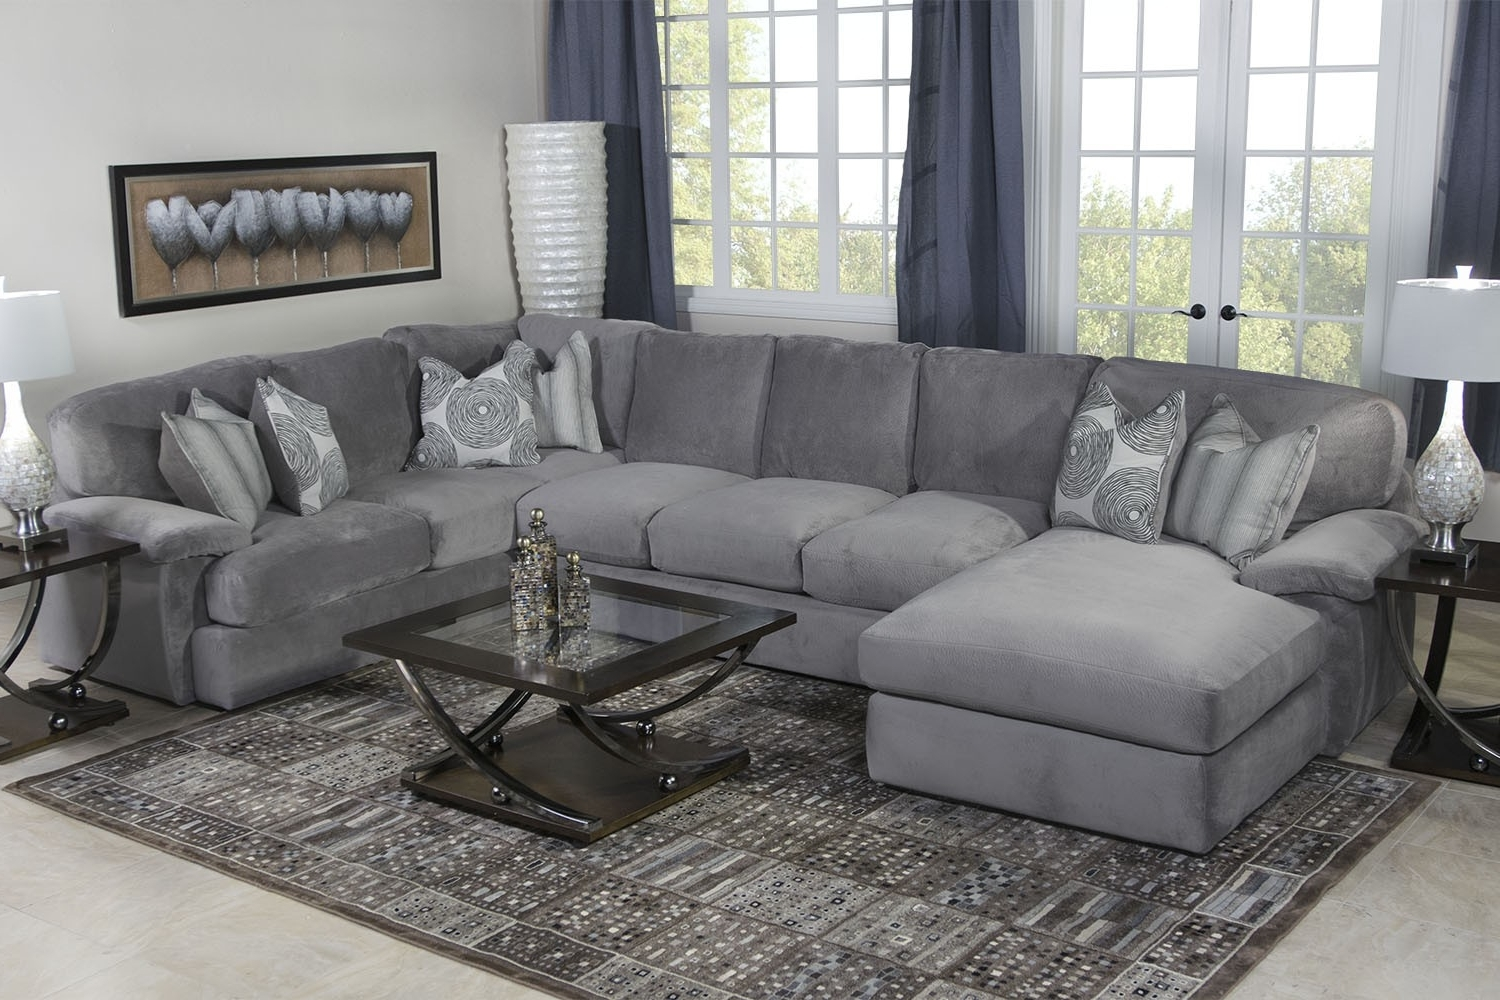 Key West Sectional Living Room In Gray Media Image 1 (Gallery 6 of 20)